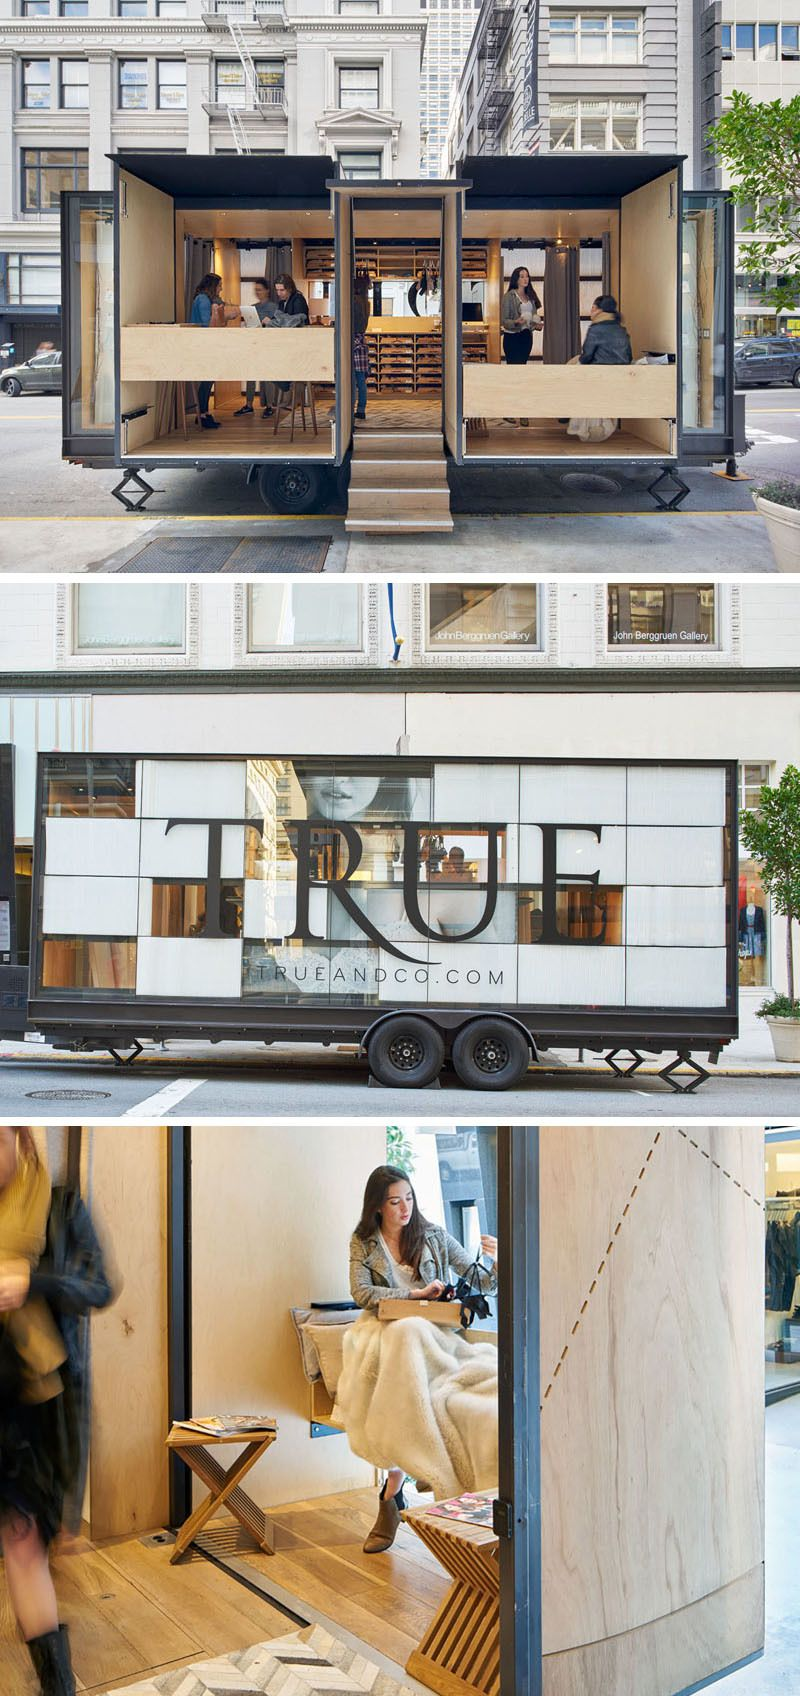 Mobile office architects and spiegel aihara workshop for Design online shop